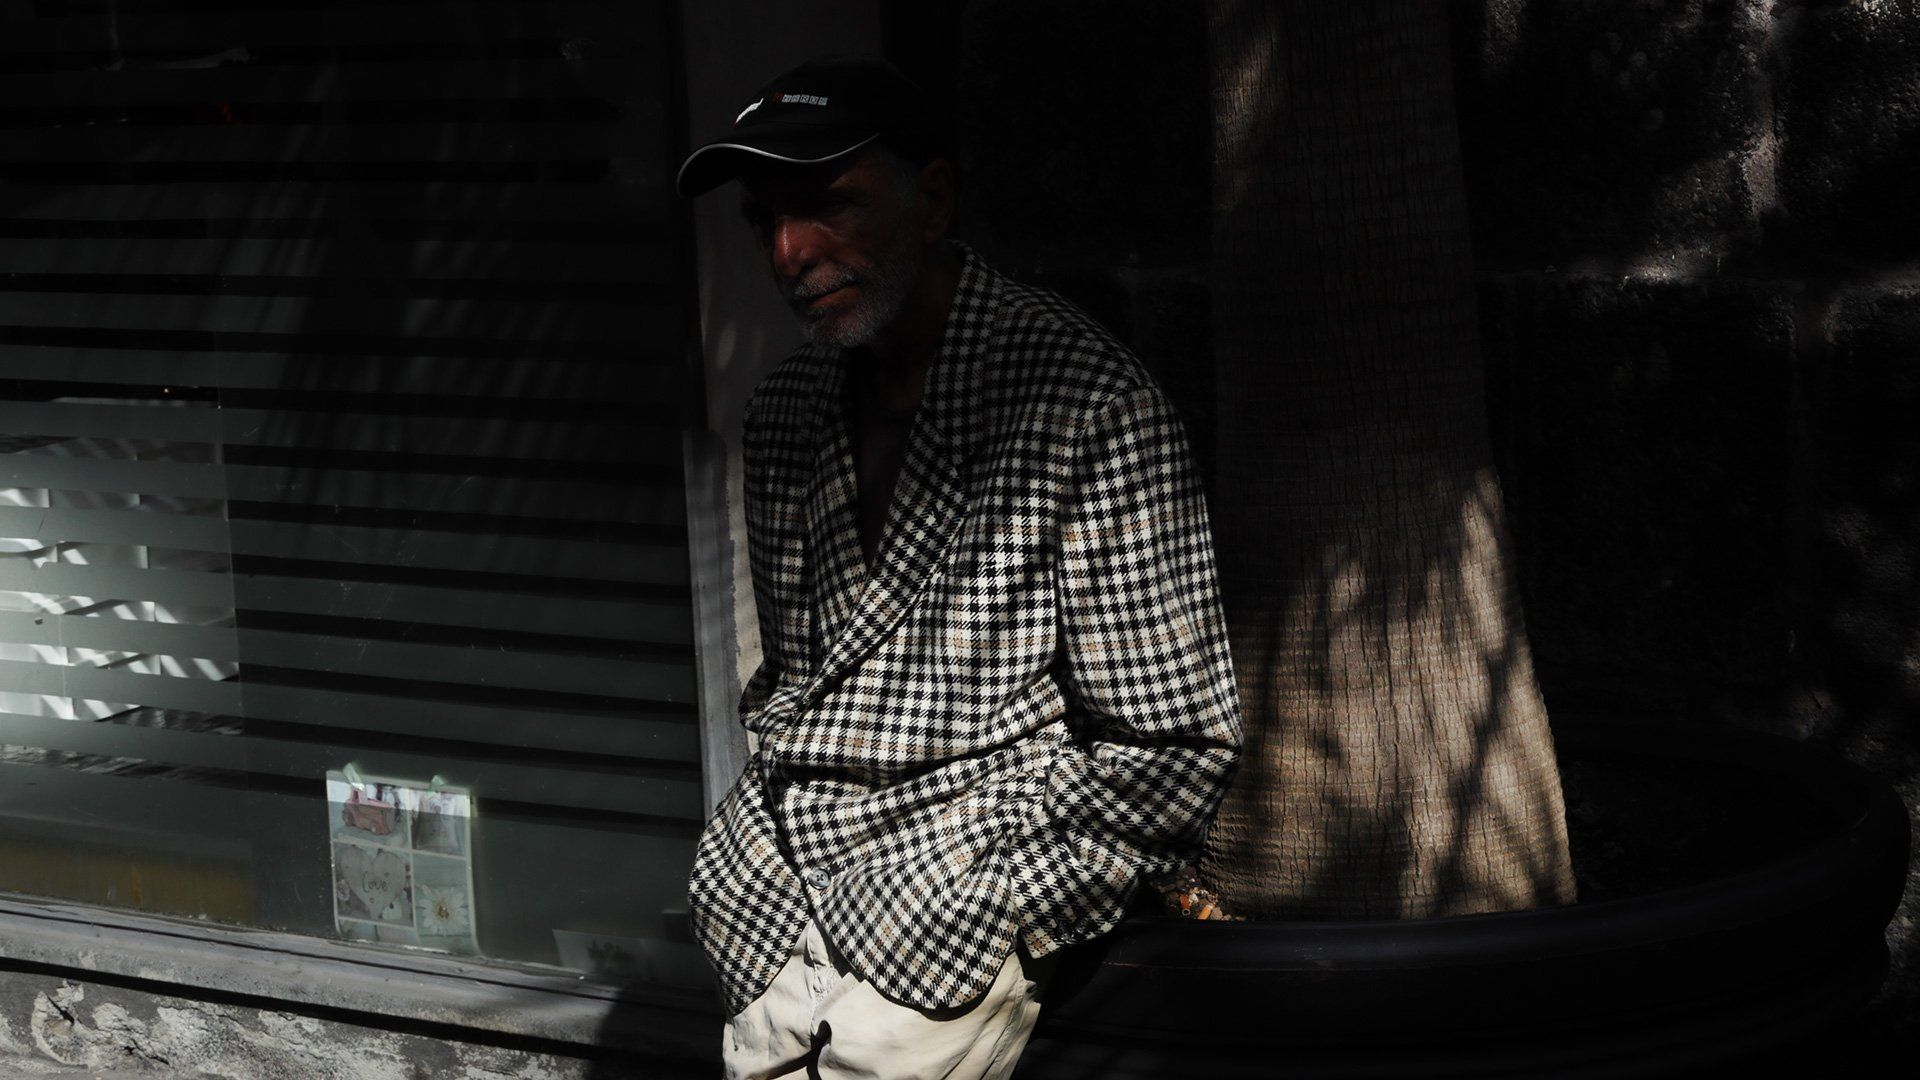 Subject candid on the streets of Italy wearing a blue chequered blazer.